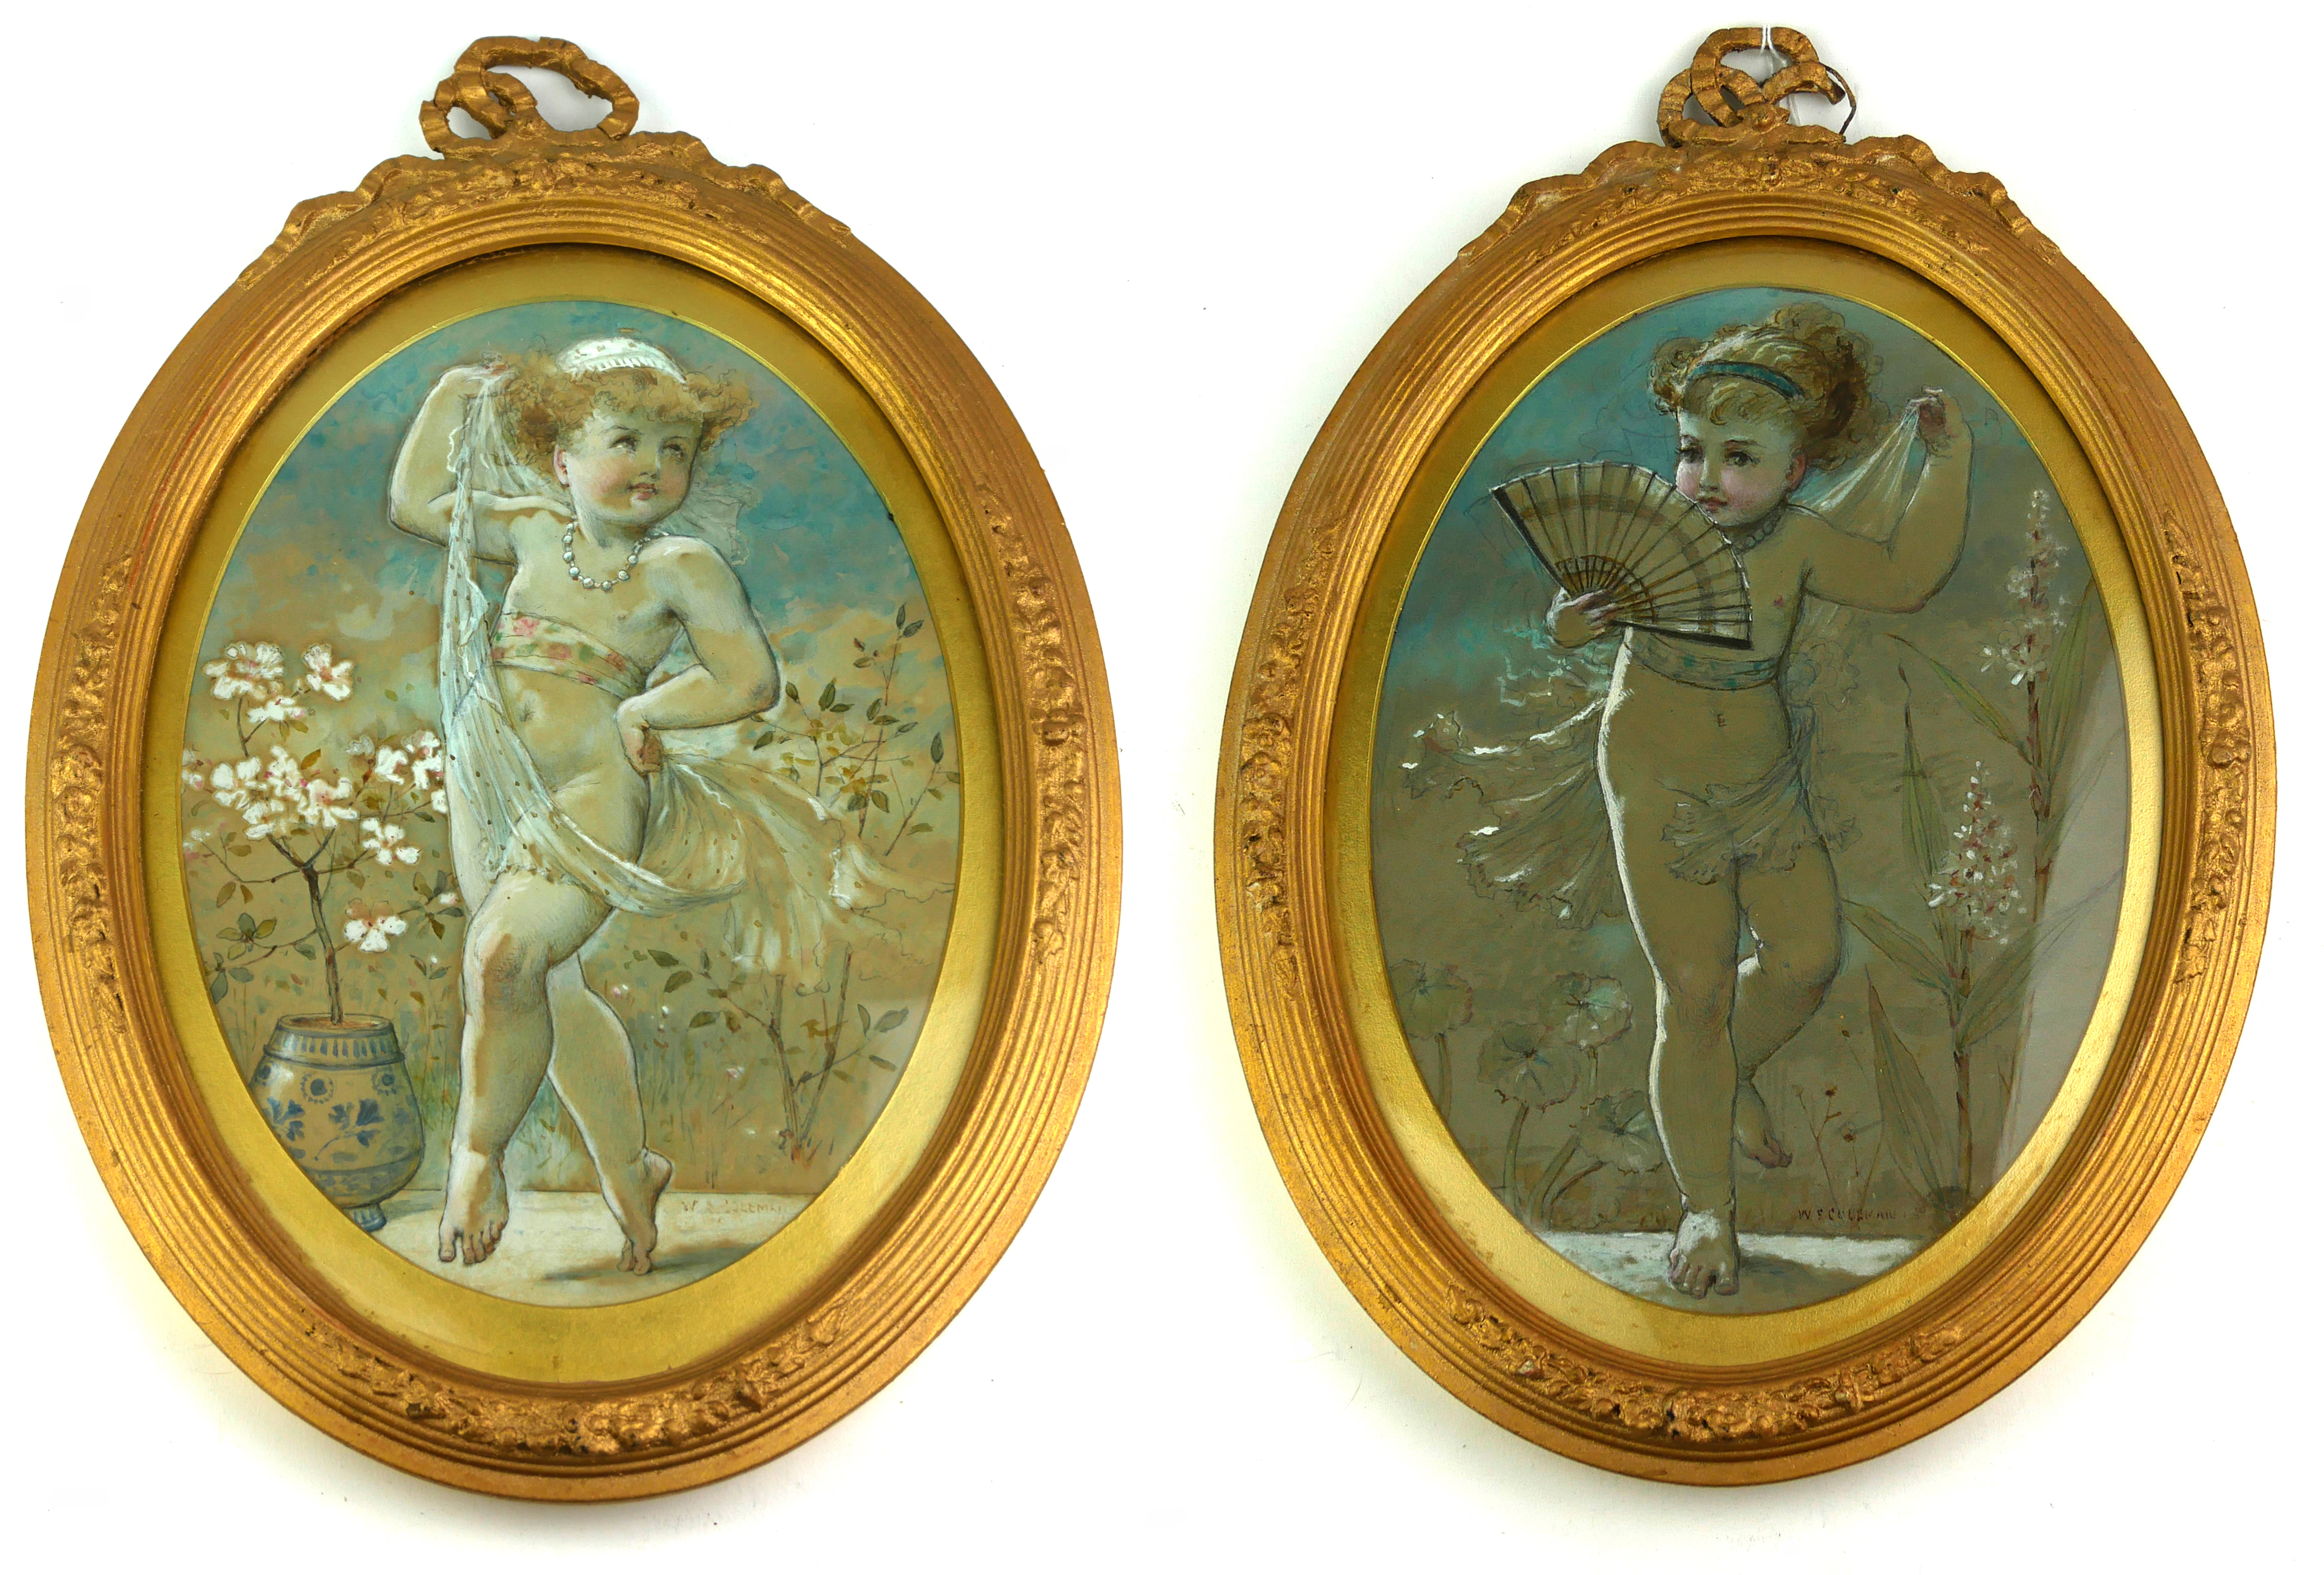 WILLIAM STEPHEN COLEMAN, 1829 - 1904, ENGLISH PAINTER AND BOOK ILLUSTRATOR, A PAIR OF 19TH CENTURY